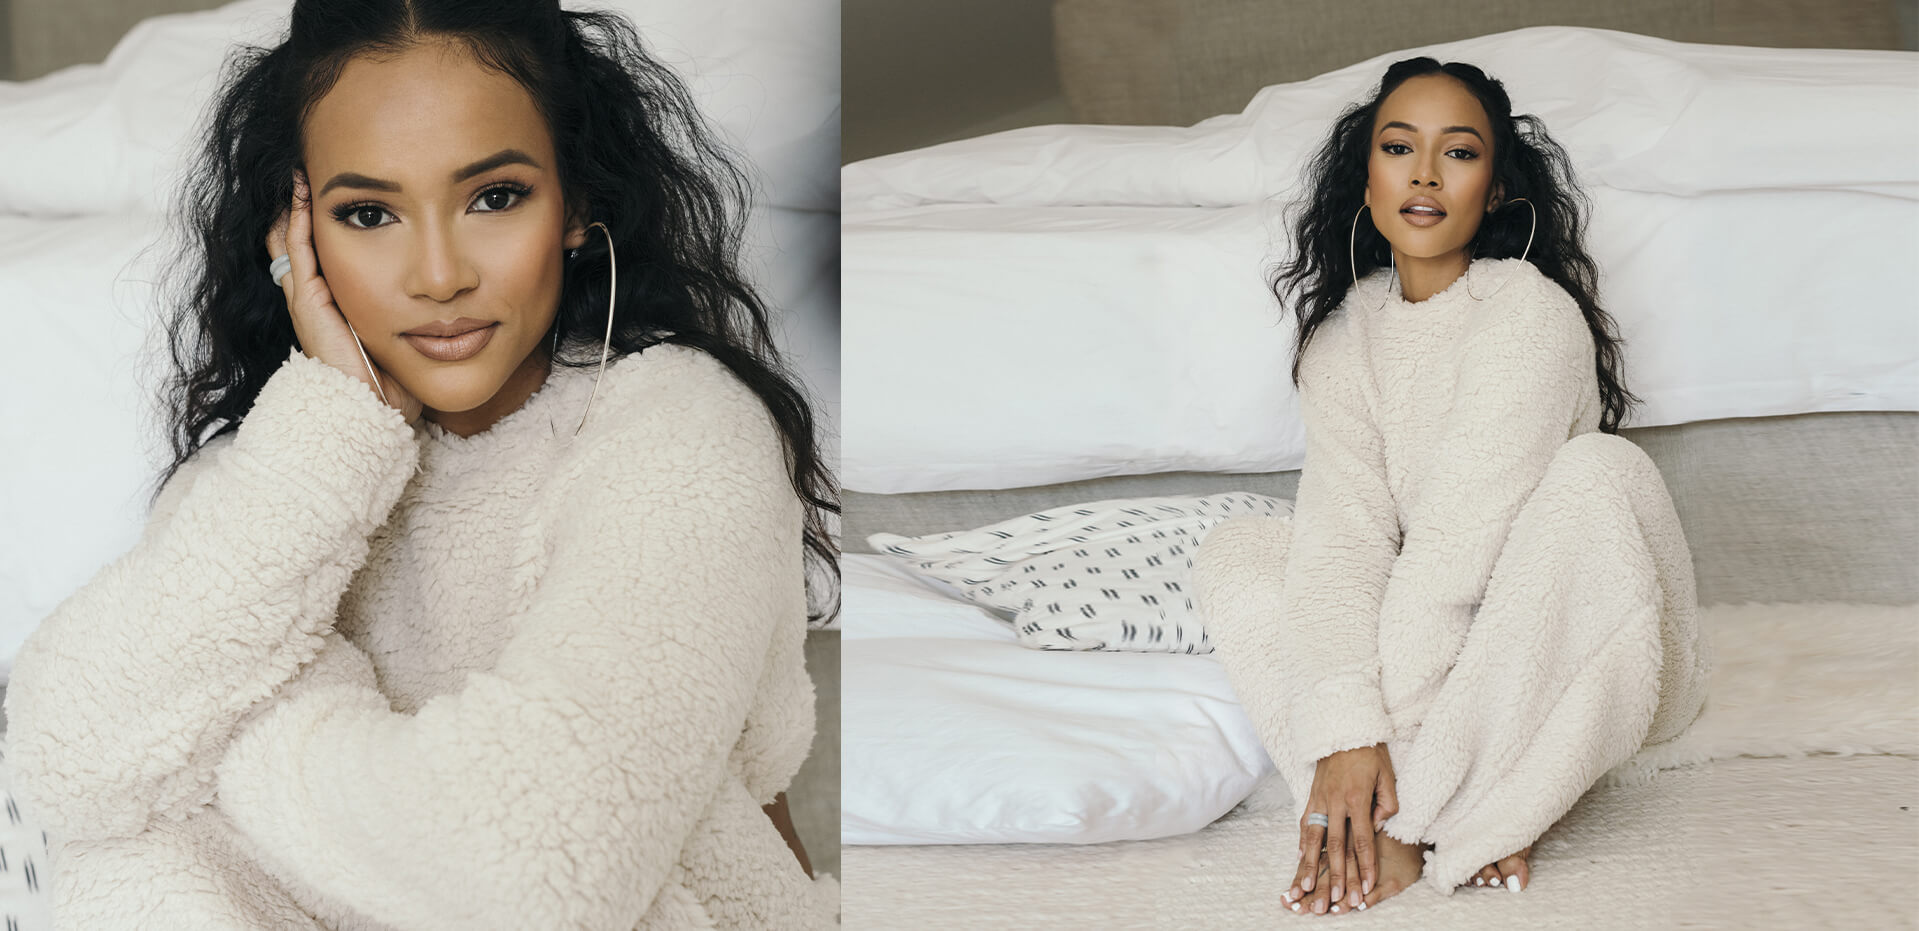 Karrueche Lookbook Image 6 Desktop